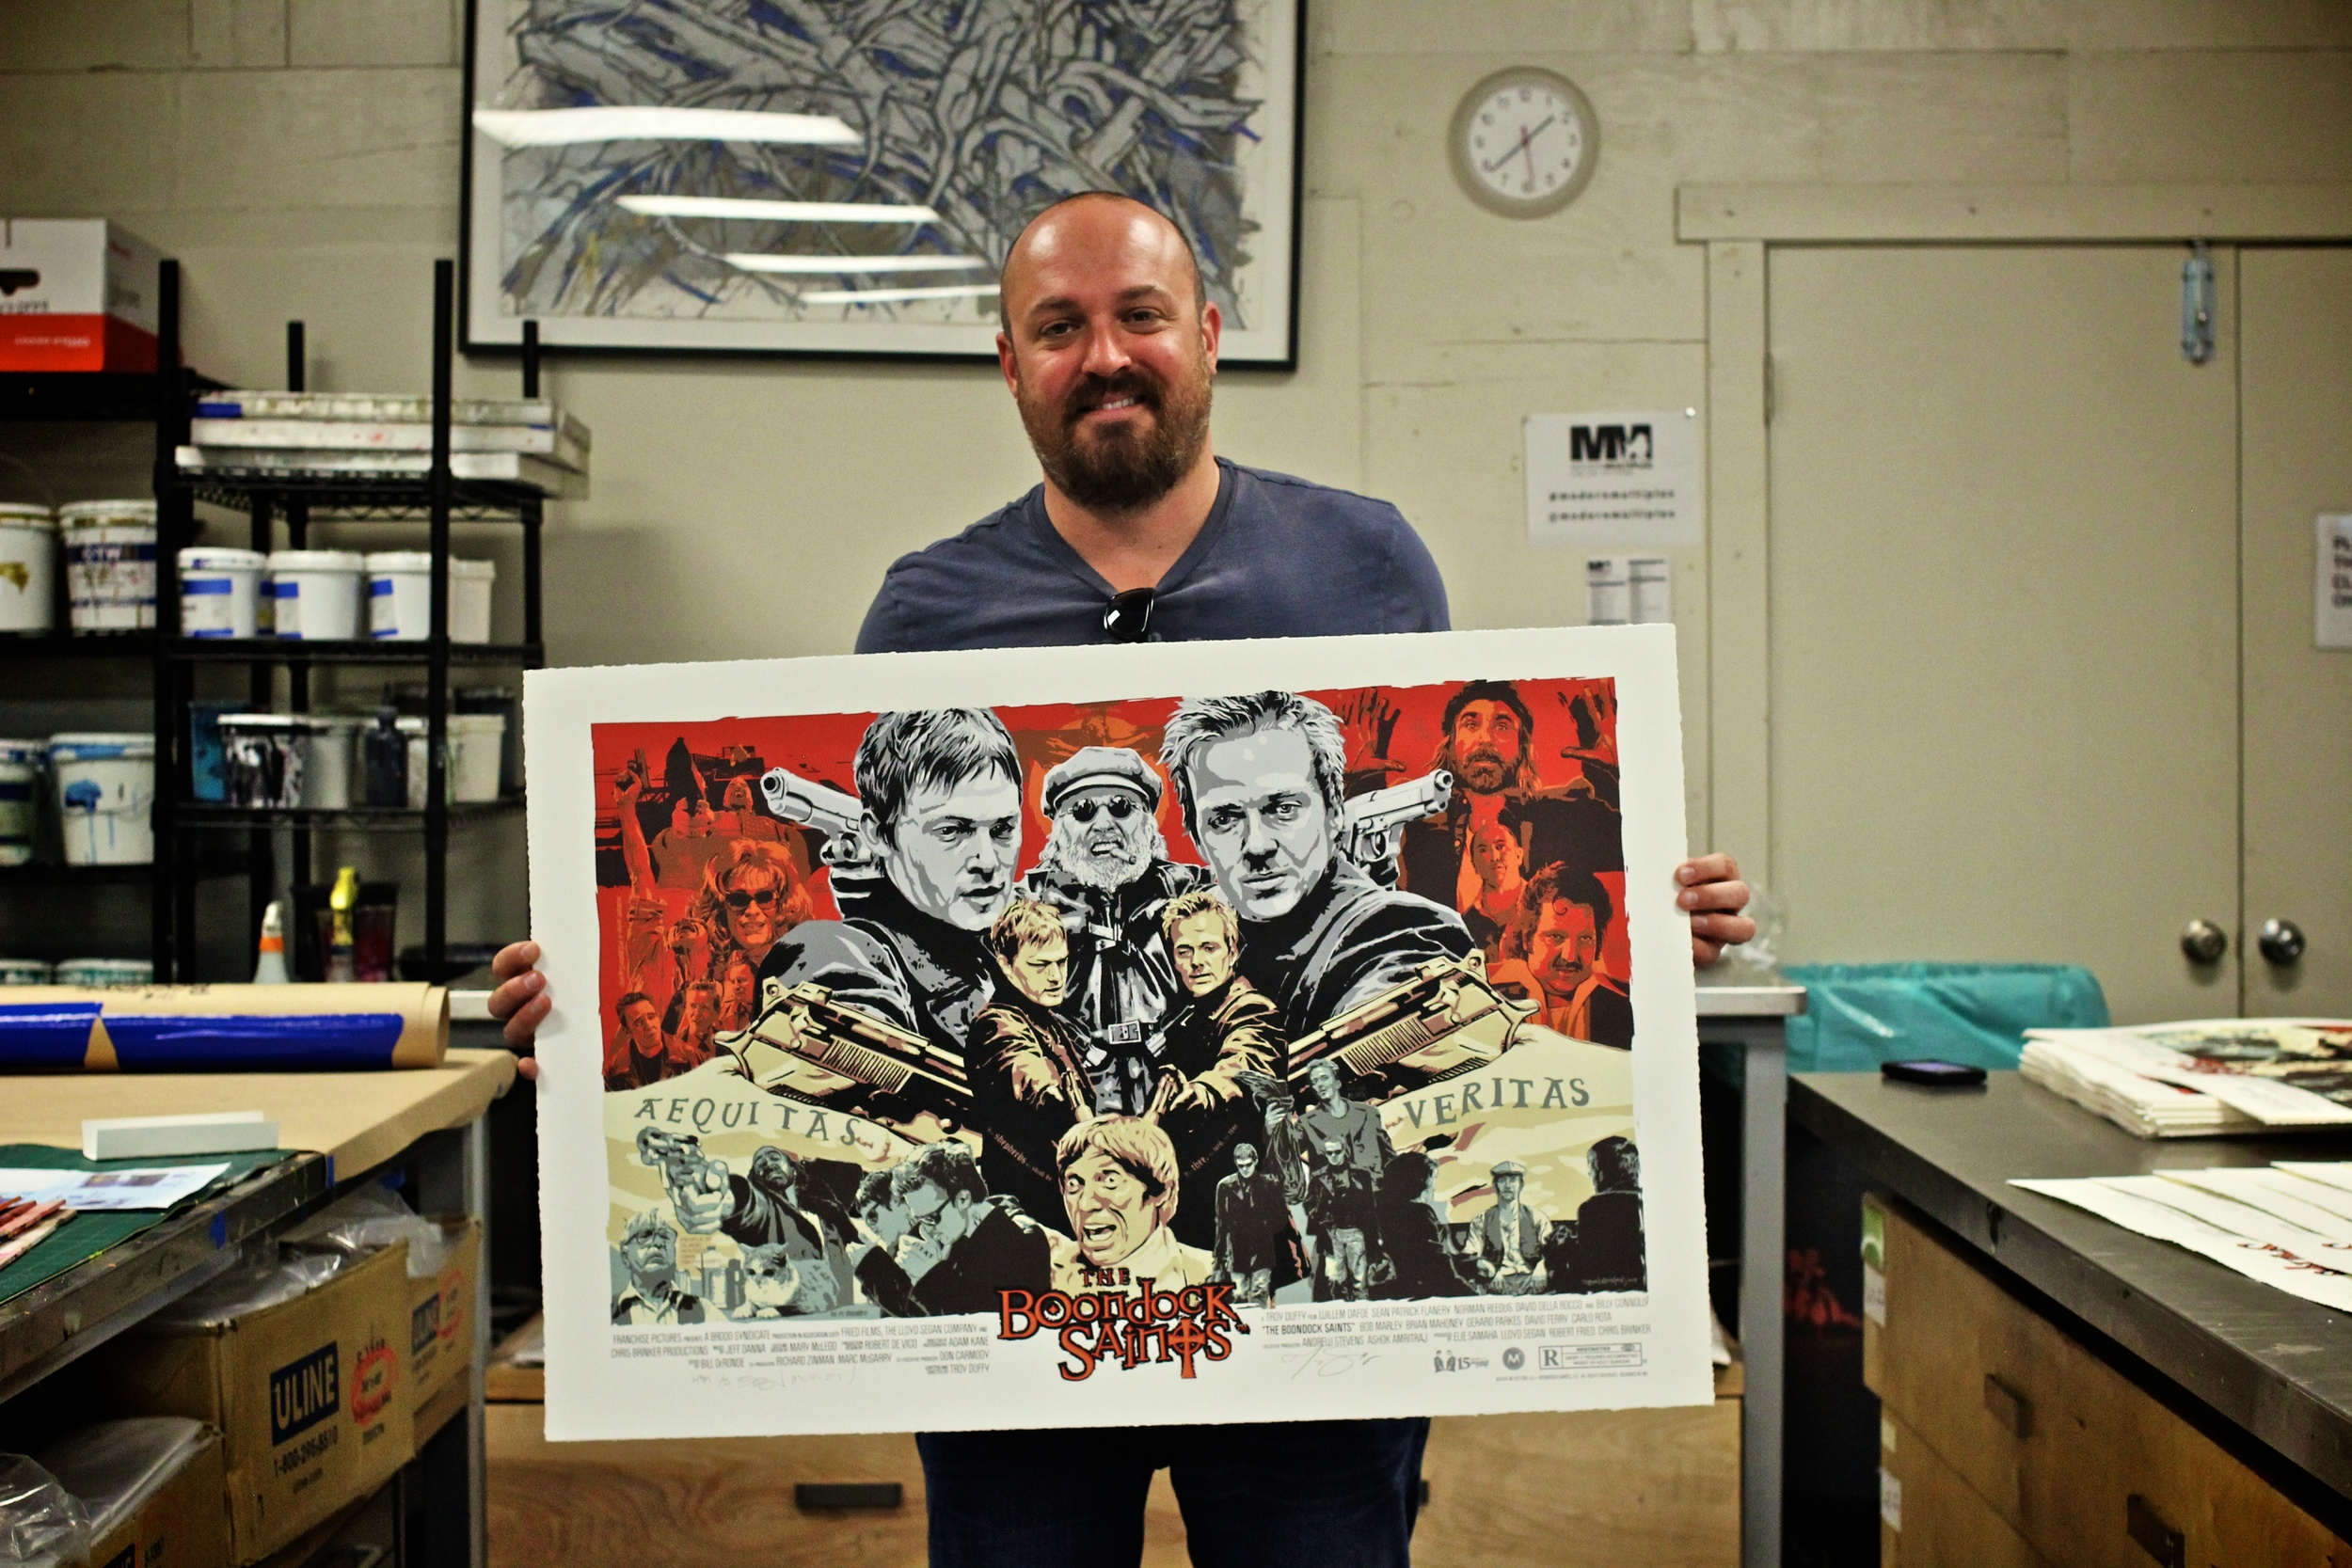 Boondock Saints Creator/Writer/Director Troy Duffy with the Variant Edition